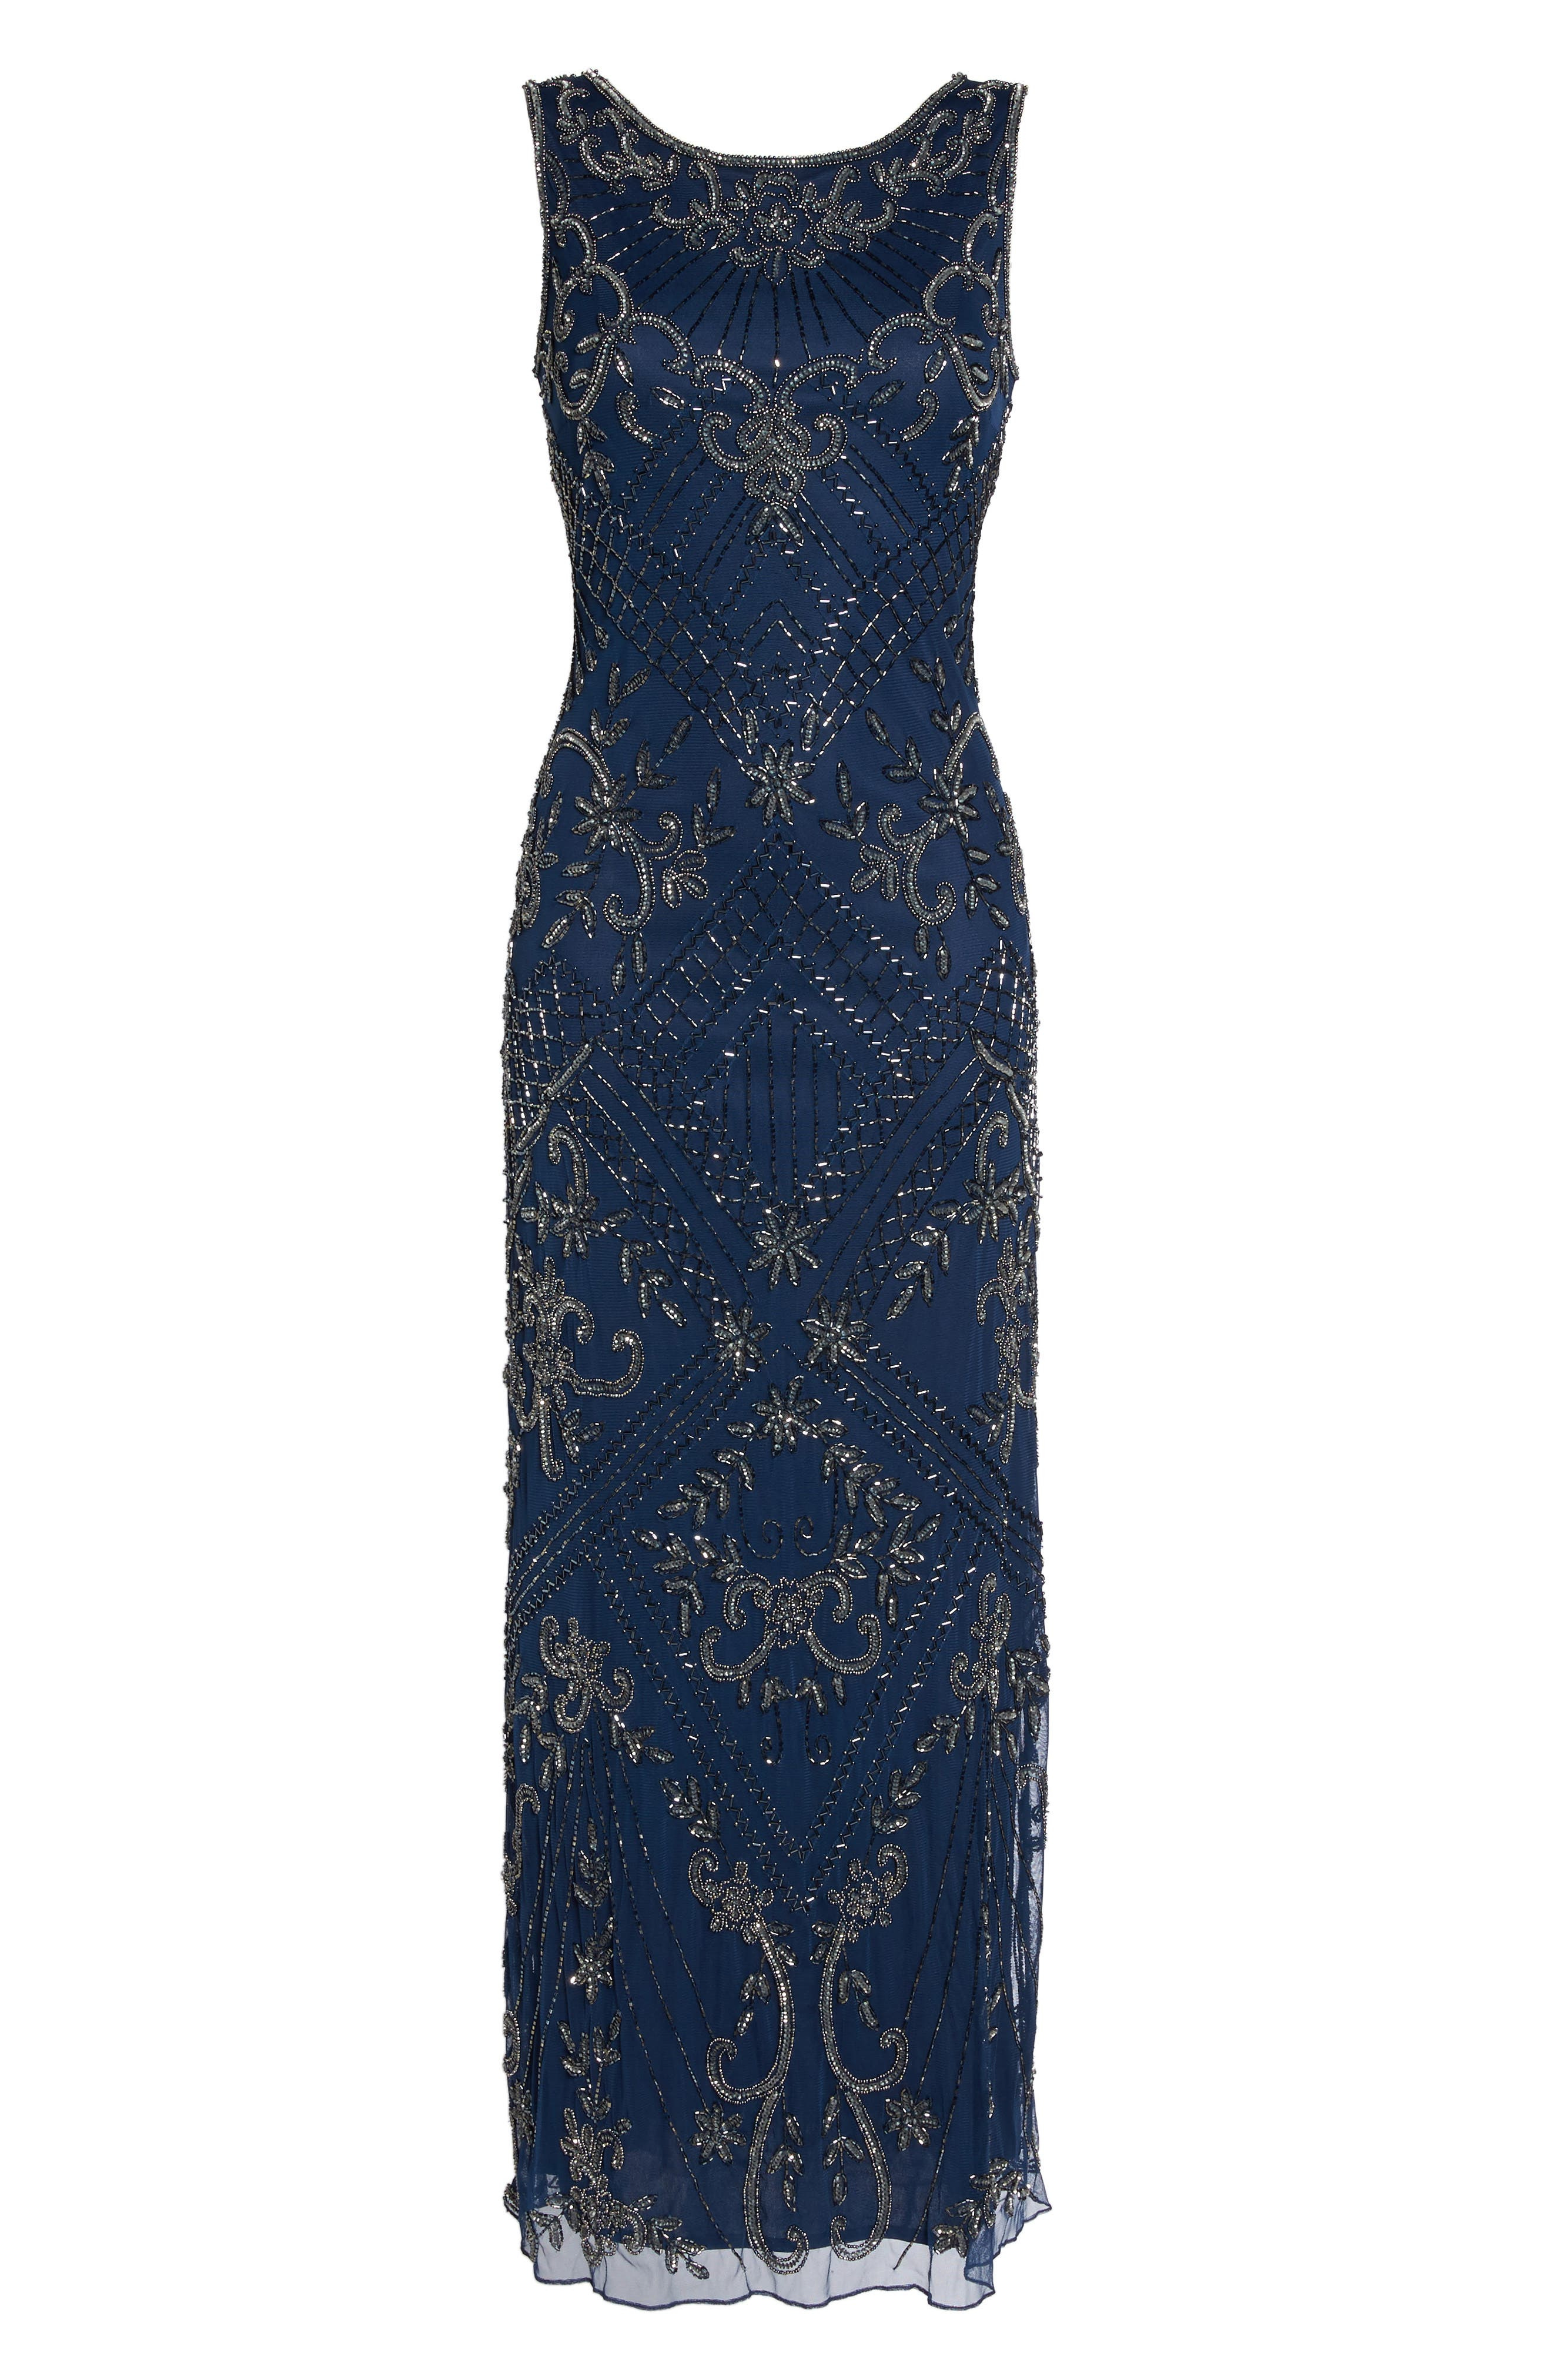 Embroidered Mesh Gown,                             Main thumbnail 1, color,                             Navy/ Mercury